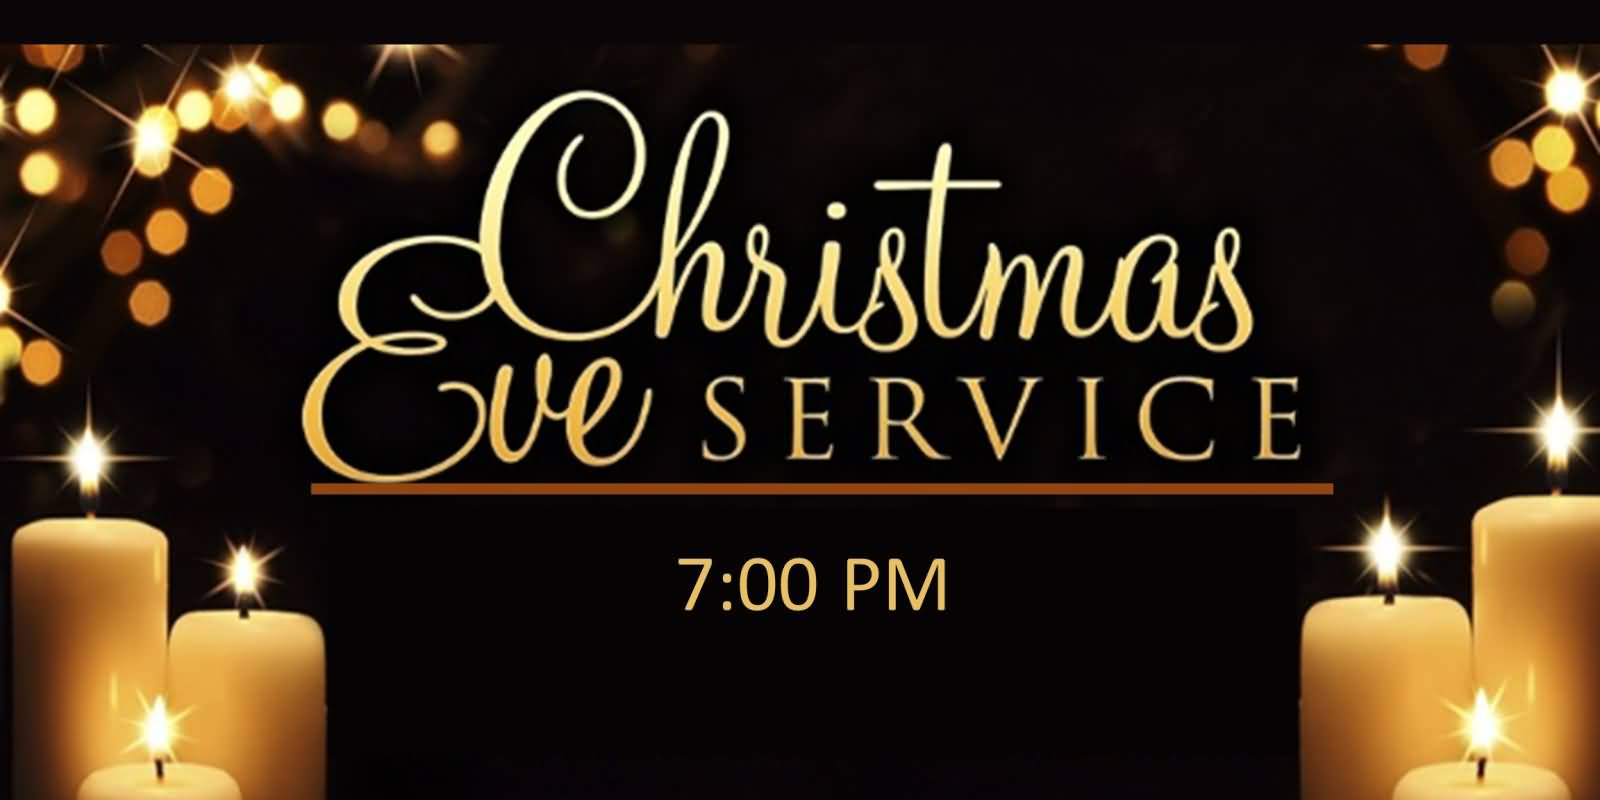 Christmas eve worship service ideas - Christmas Eve Service Picture